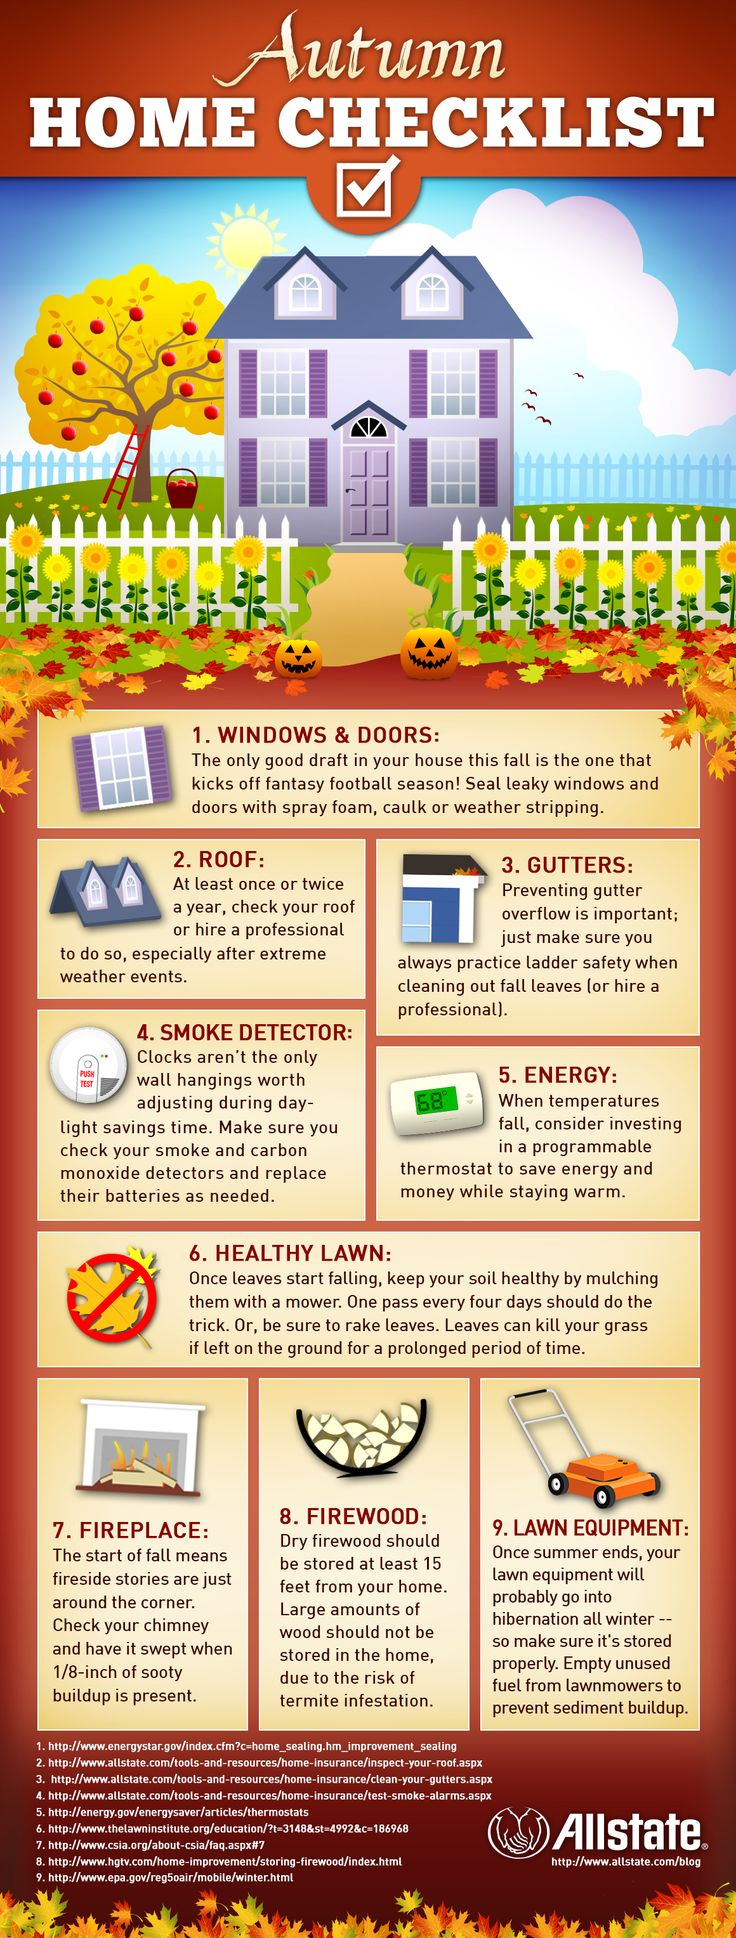 There are a variety of home maintenance tasks you might want to perform as fall goes into full swing. Here's a checklist of some important things to do this fall.